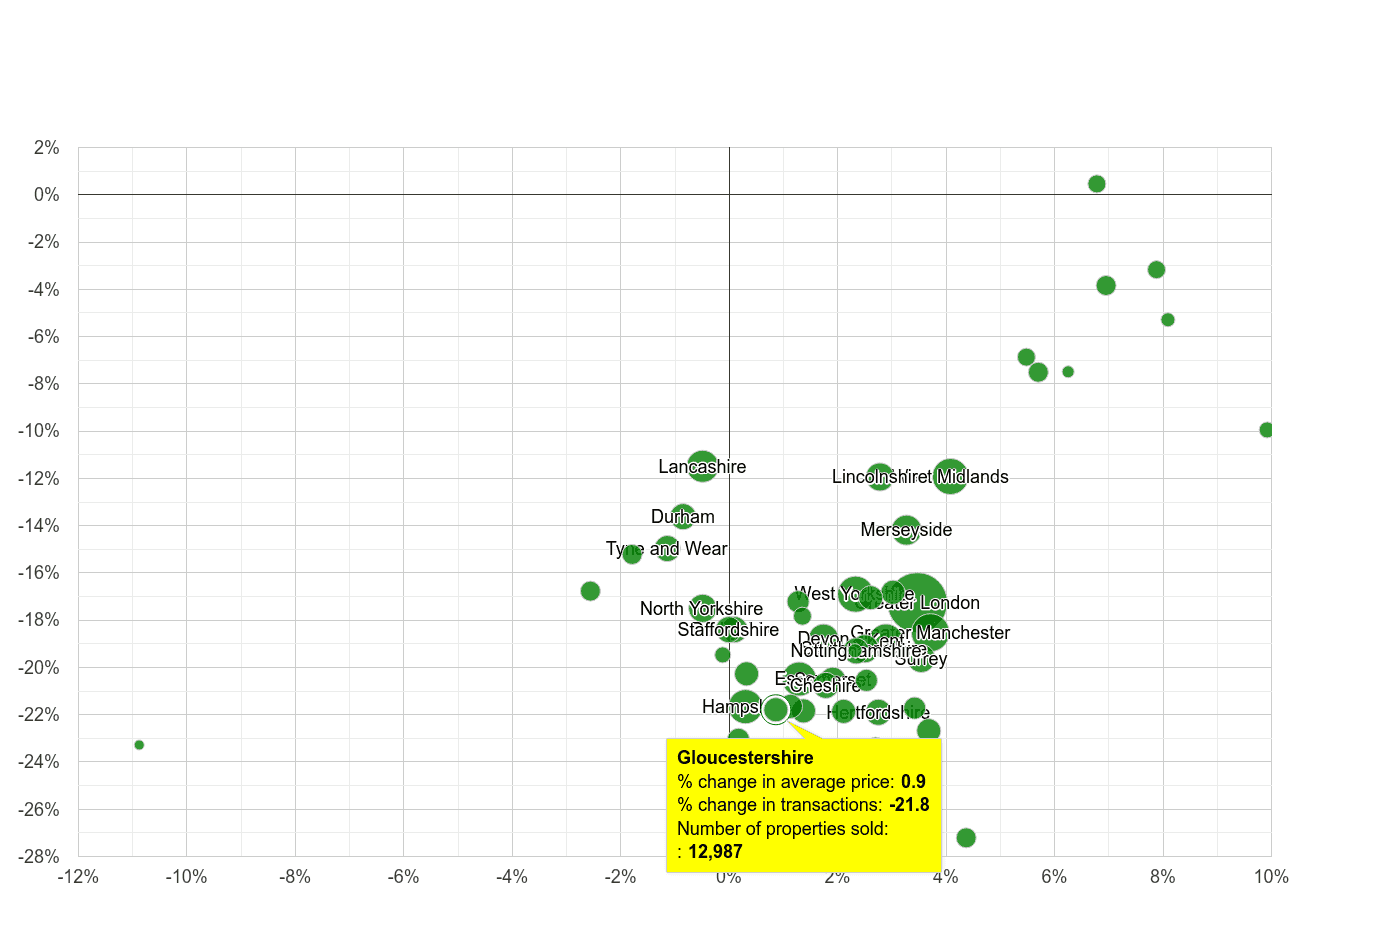 Gloucestershire property price and sales volume change relative to other counties